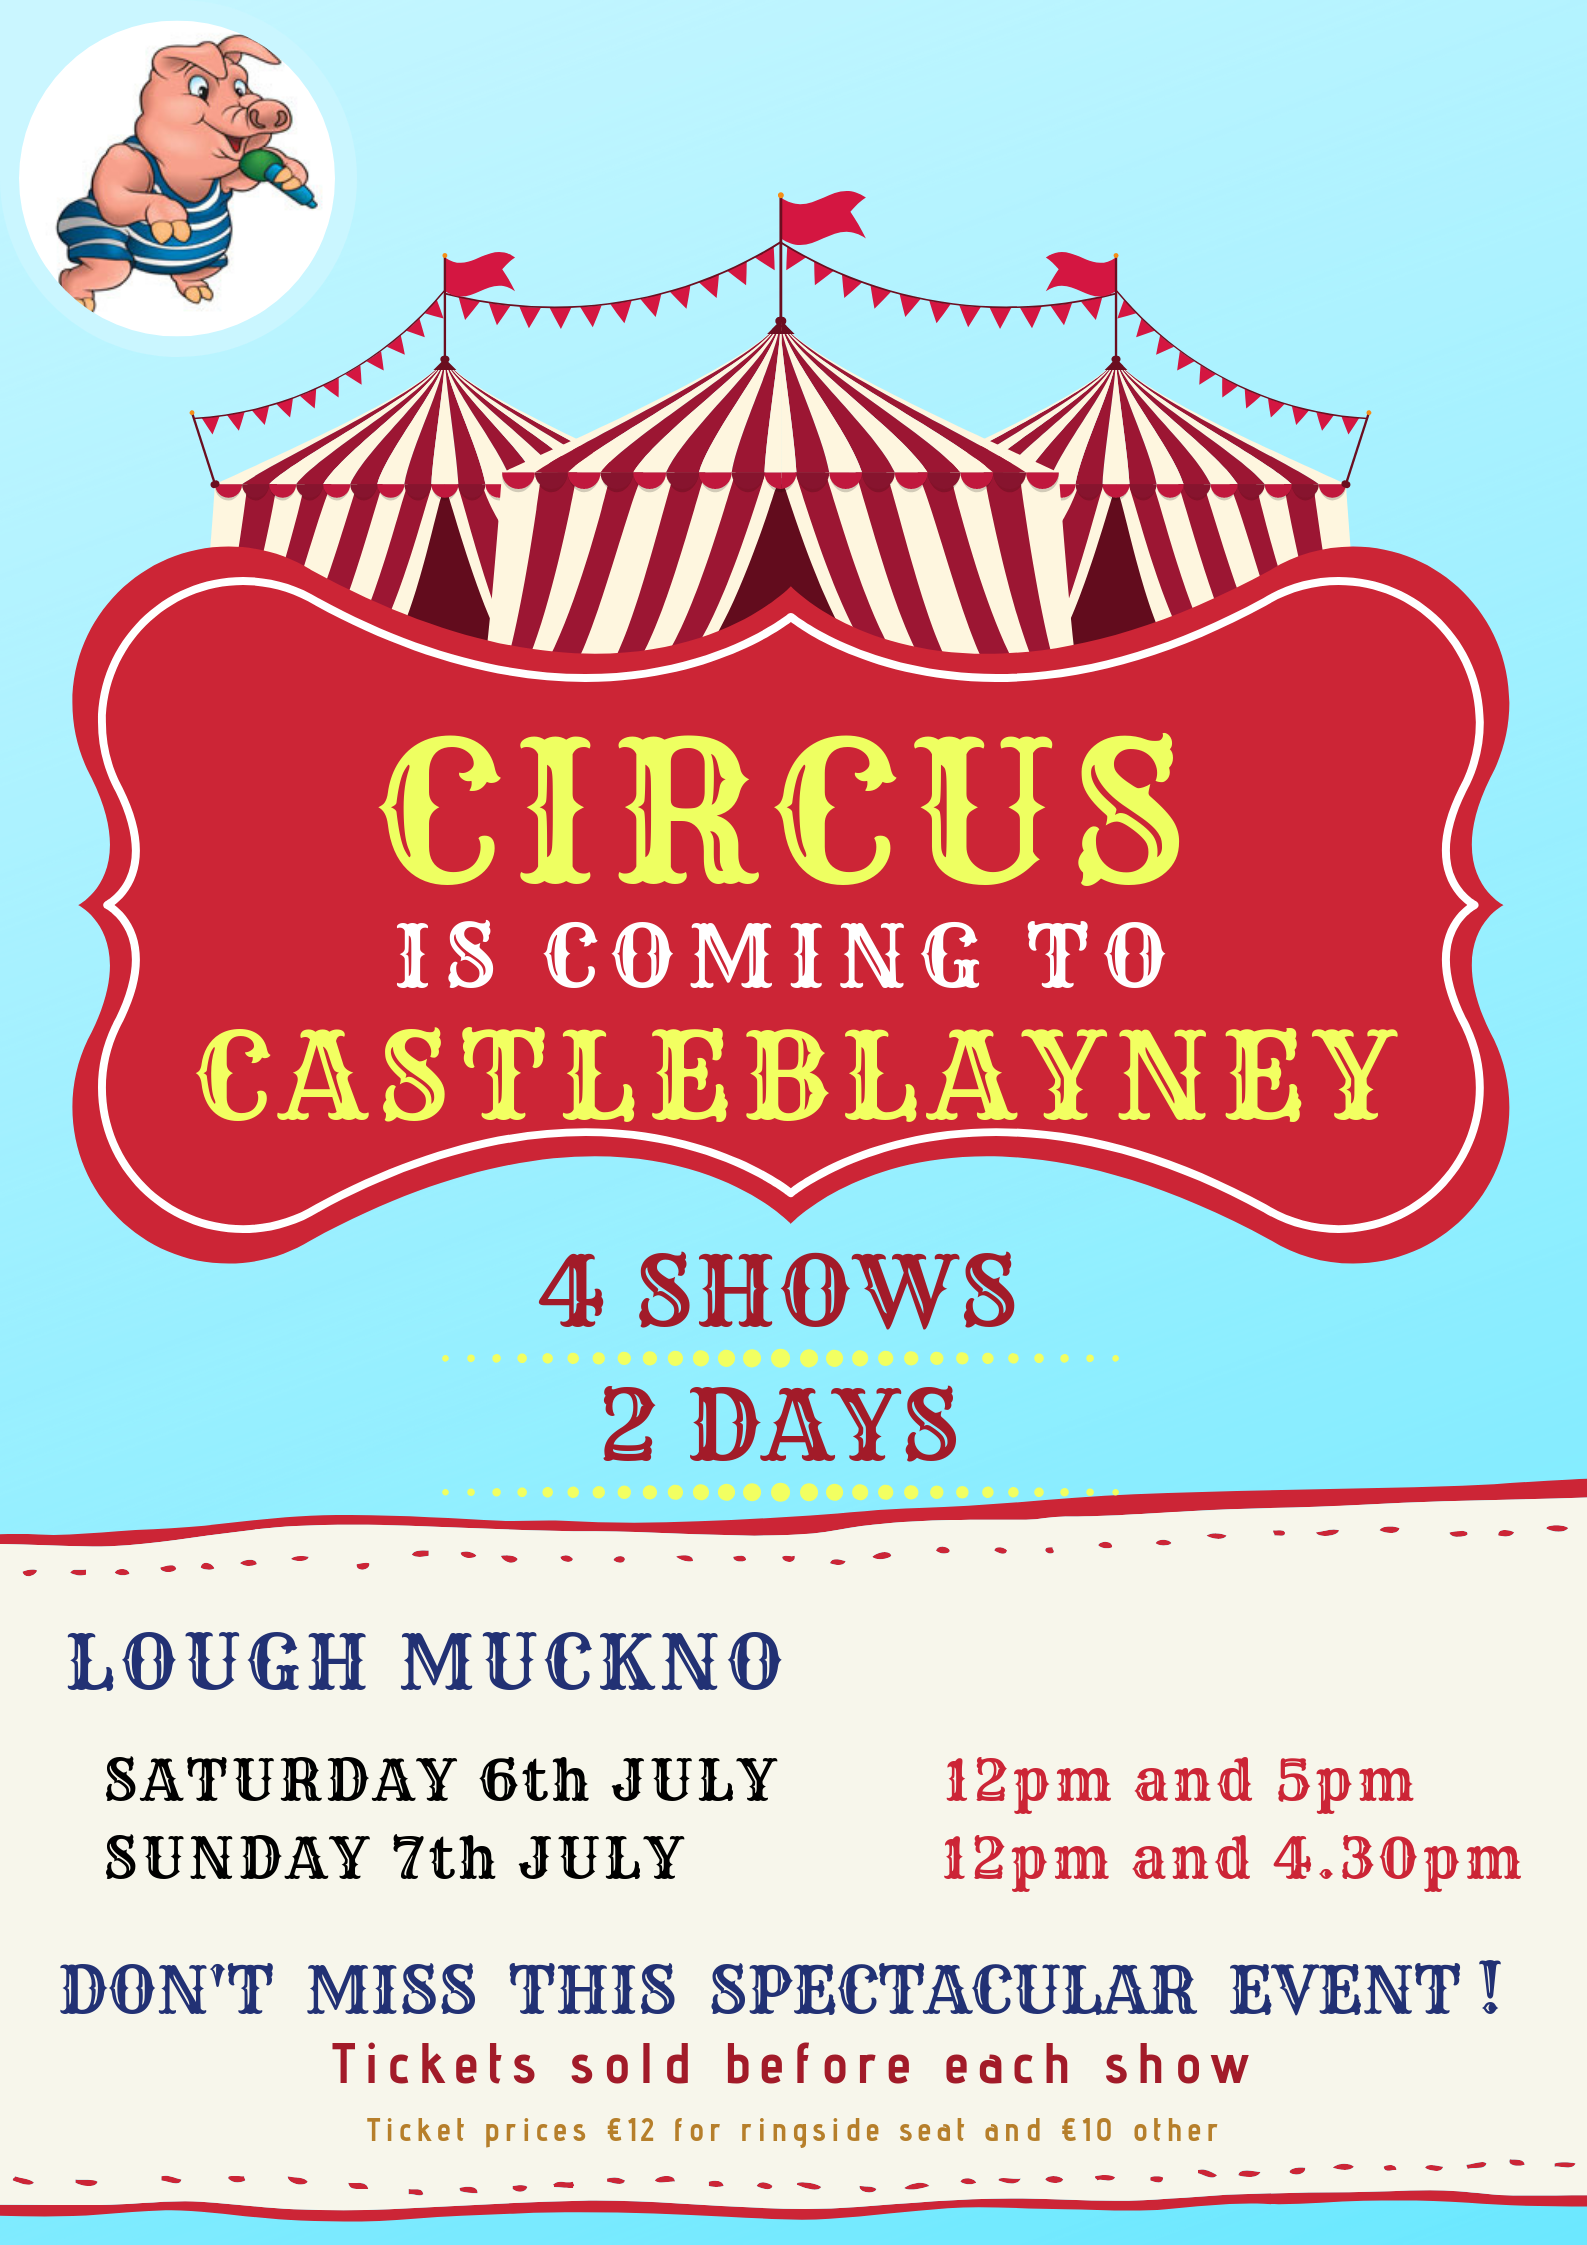 Castleblayney Events & Things to Do | Eventbrite